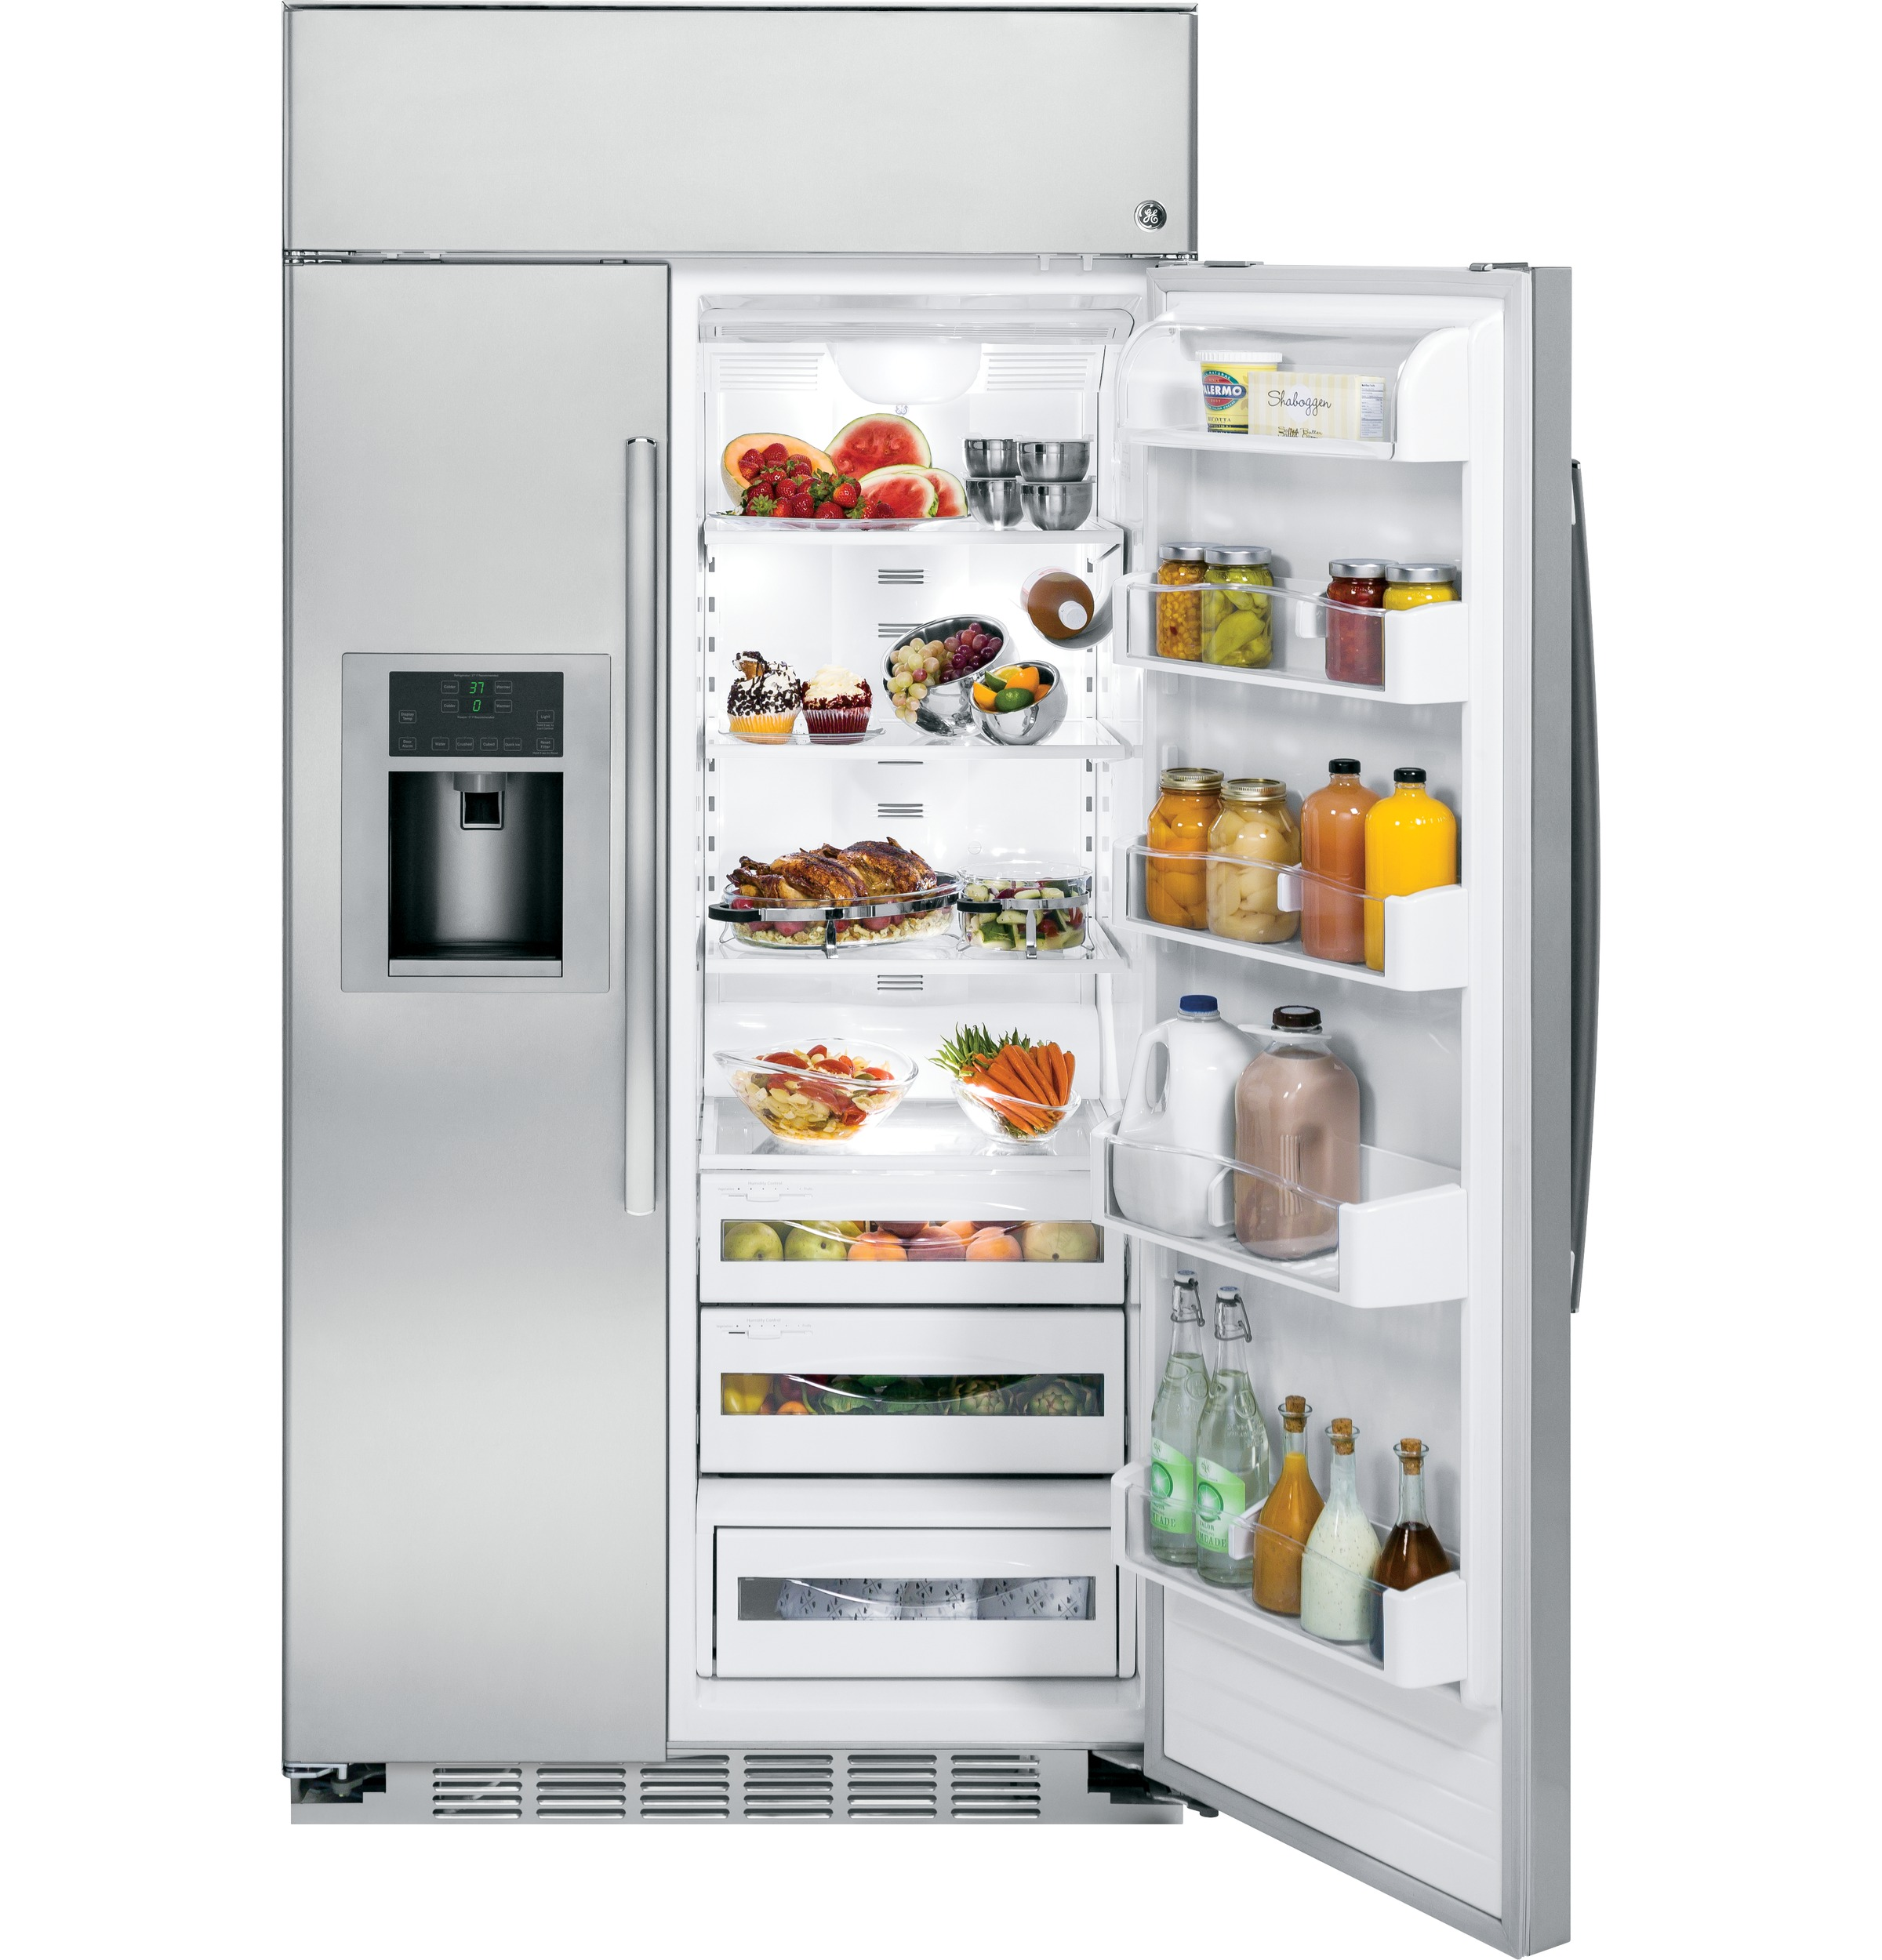 Ge Profile Series 42 Built In Stainless Side By Refrigerator Dryer Repair Diagram Additionally Haier Wine Cooler Parts Product Image